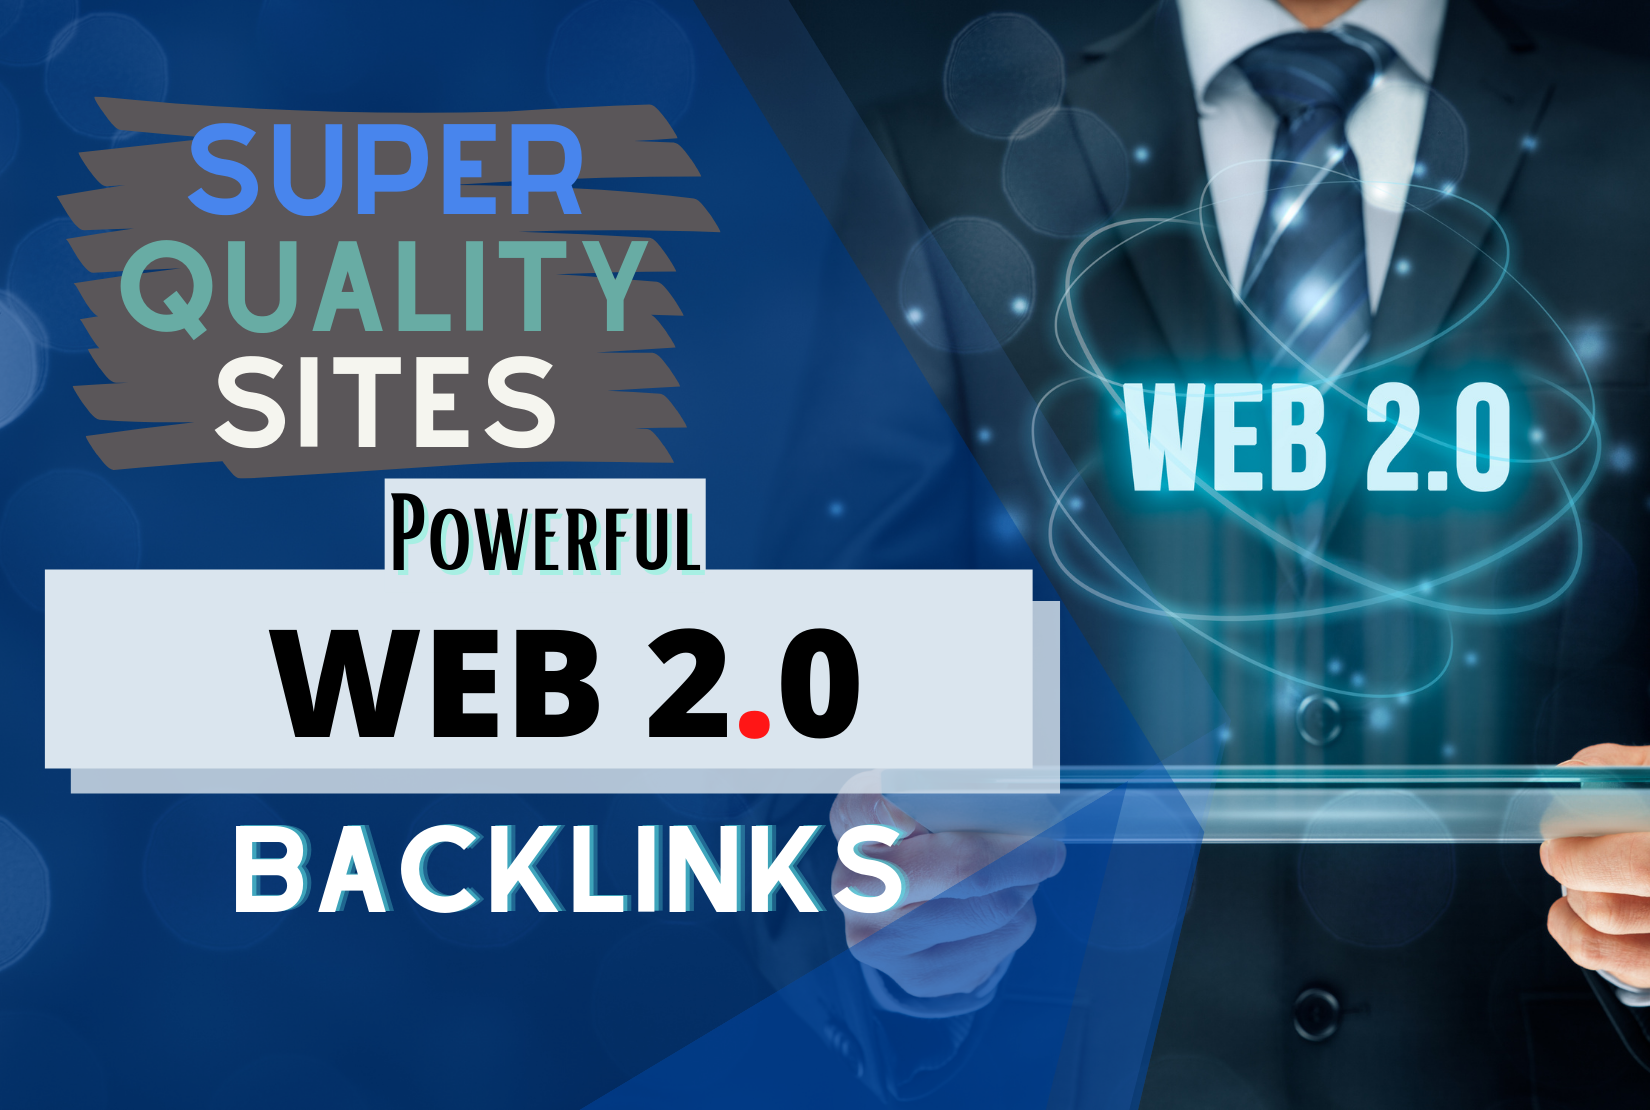 Google first page ranking with 20 High Quality Web 2.0 Backlinks